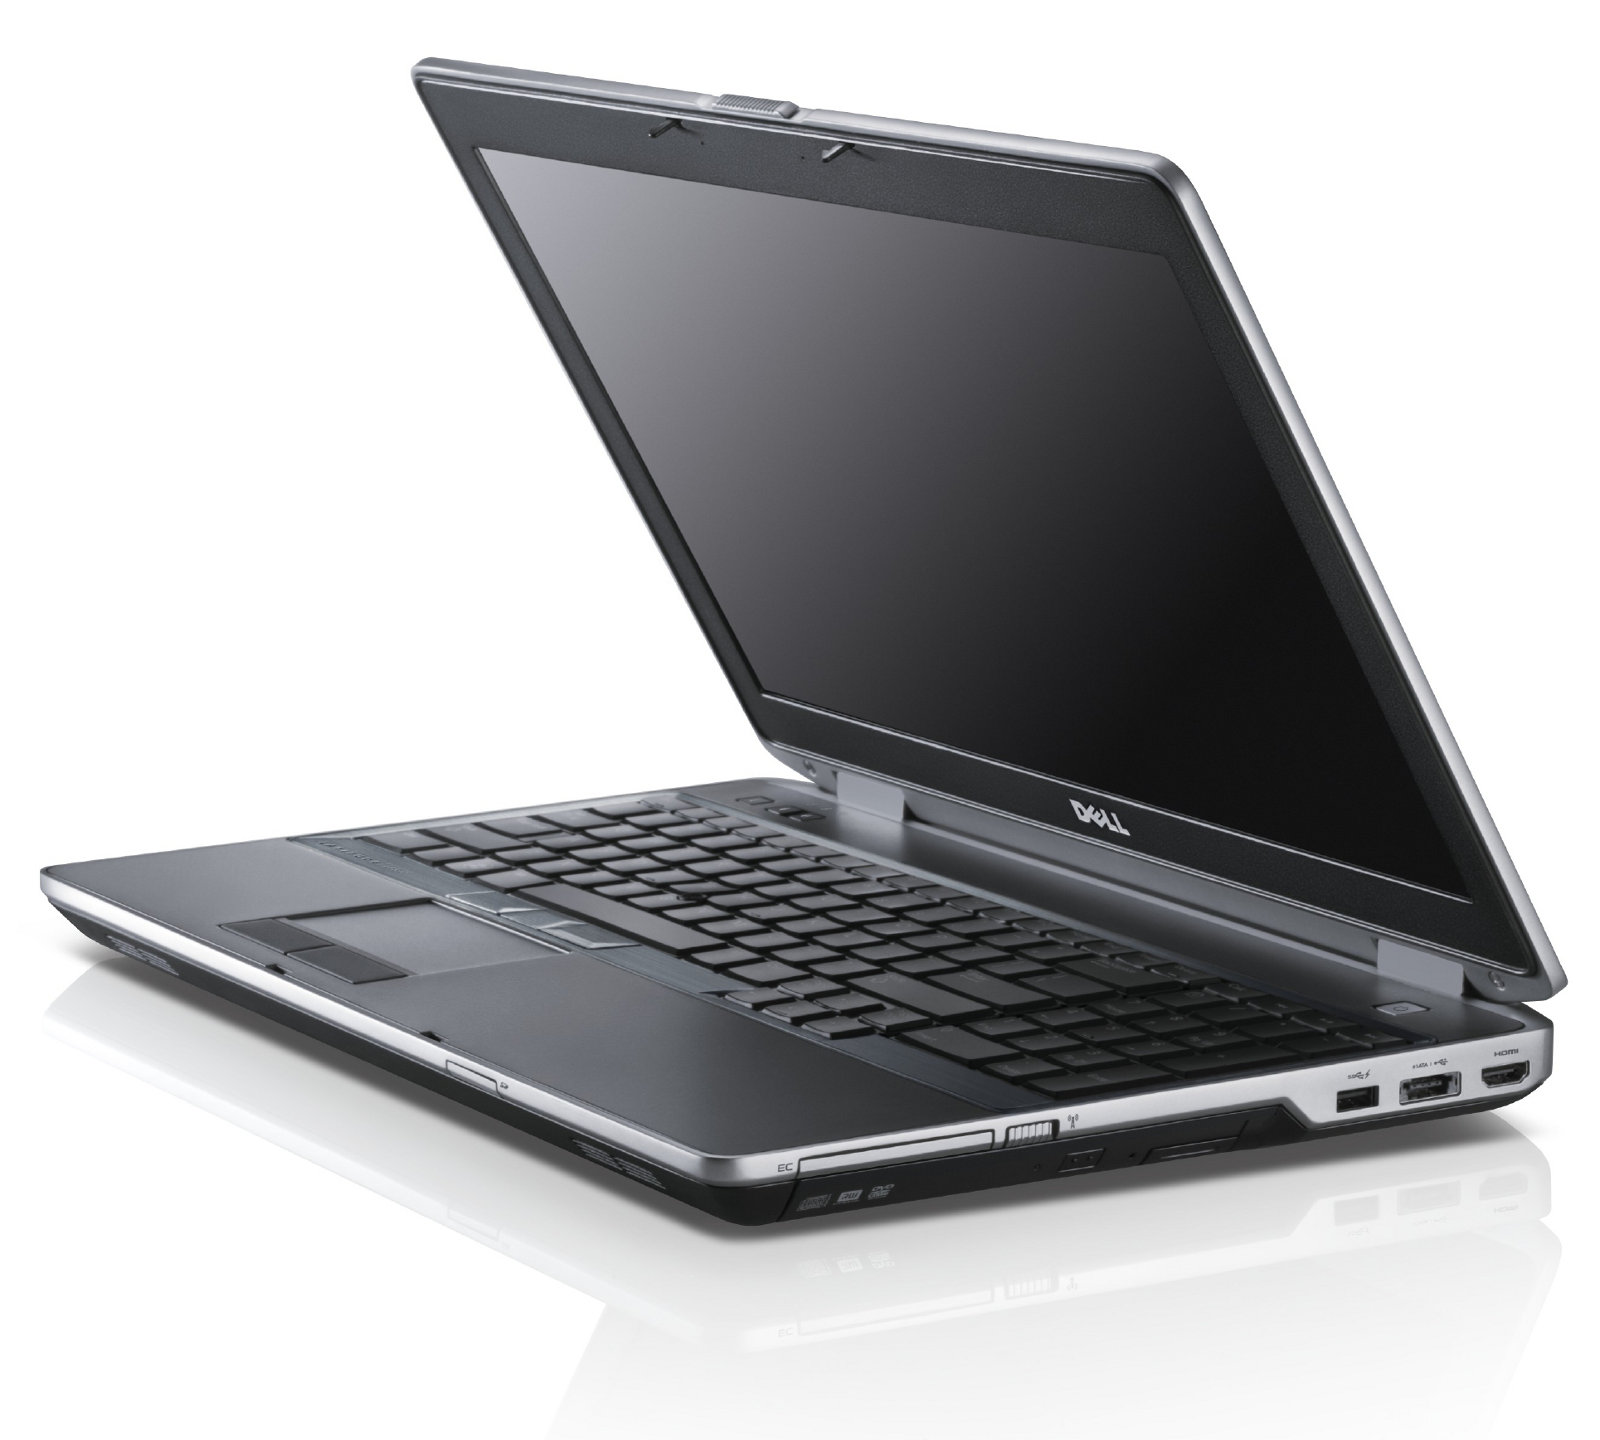 "Art. Portátil Dell Latitude E6330 (Intel Core i5 3320m 3.3Ghz/4GB/128GB-SSD/13""/DVDRW/W7P)"